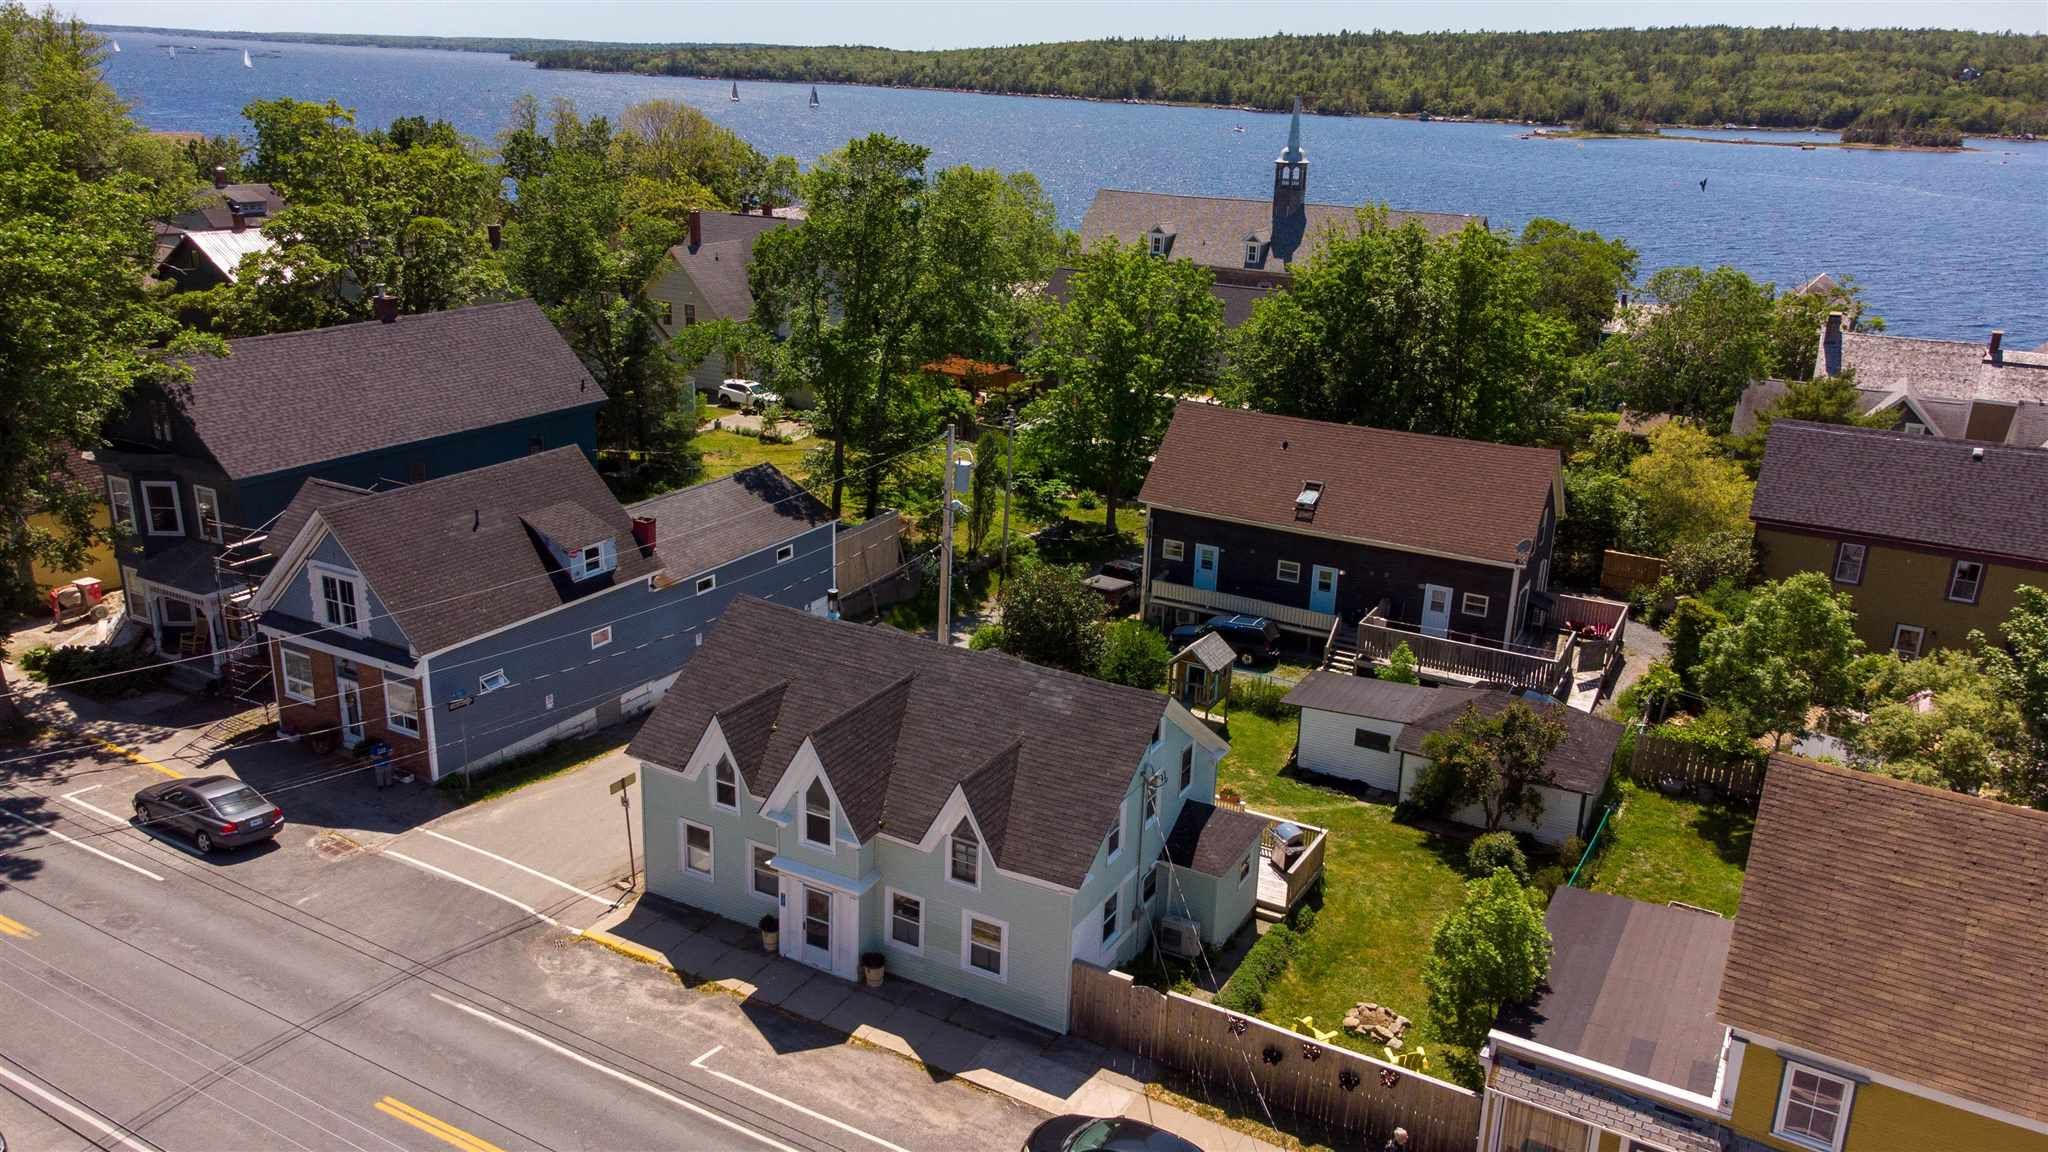 Main Photo: 131 Water Street in Shelburne: 407-Shelburne County Residential for sale (South Shore)  : MLS®# 202115250